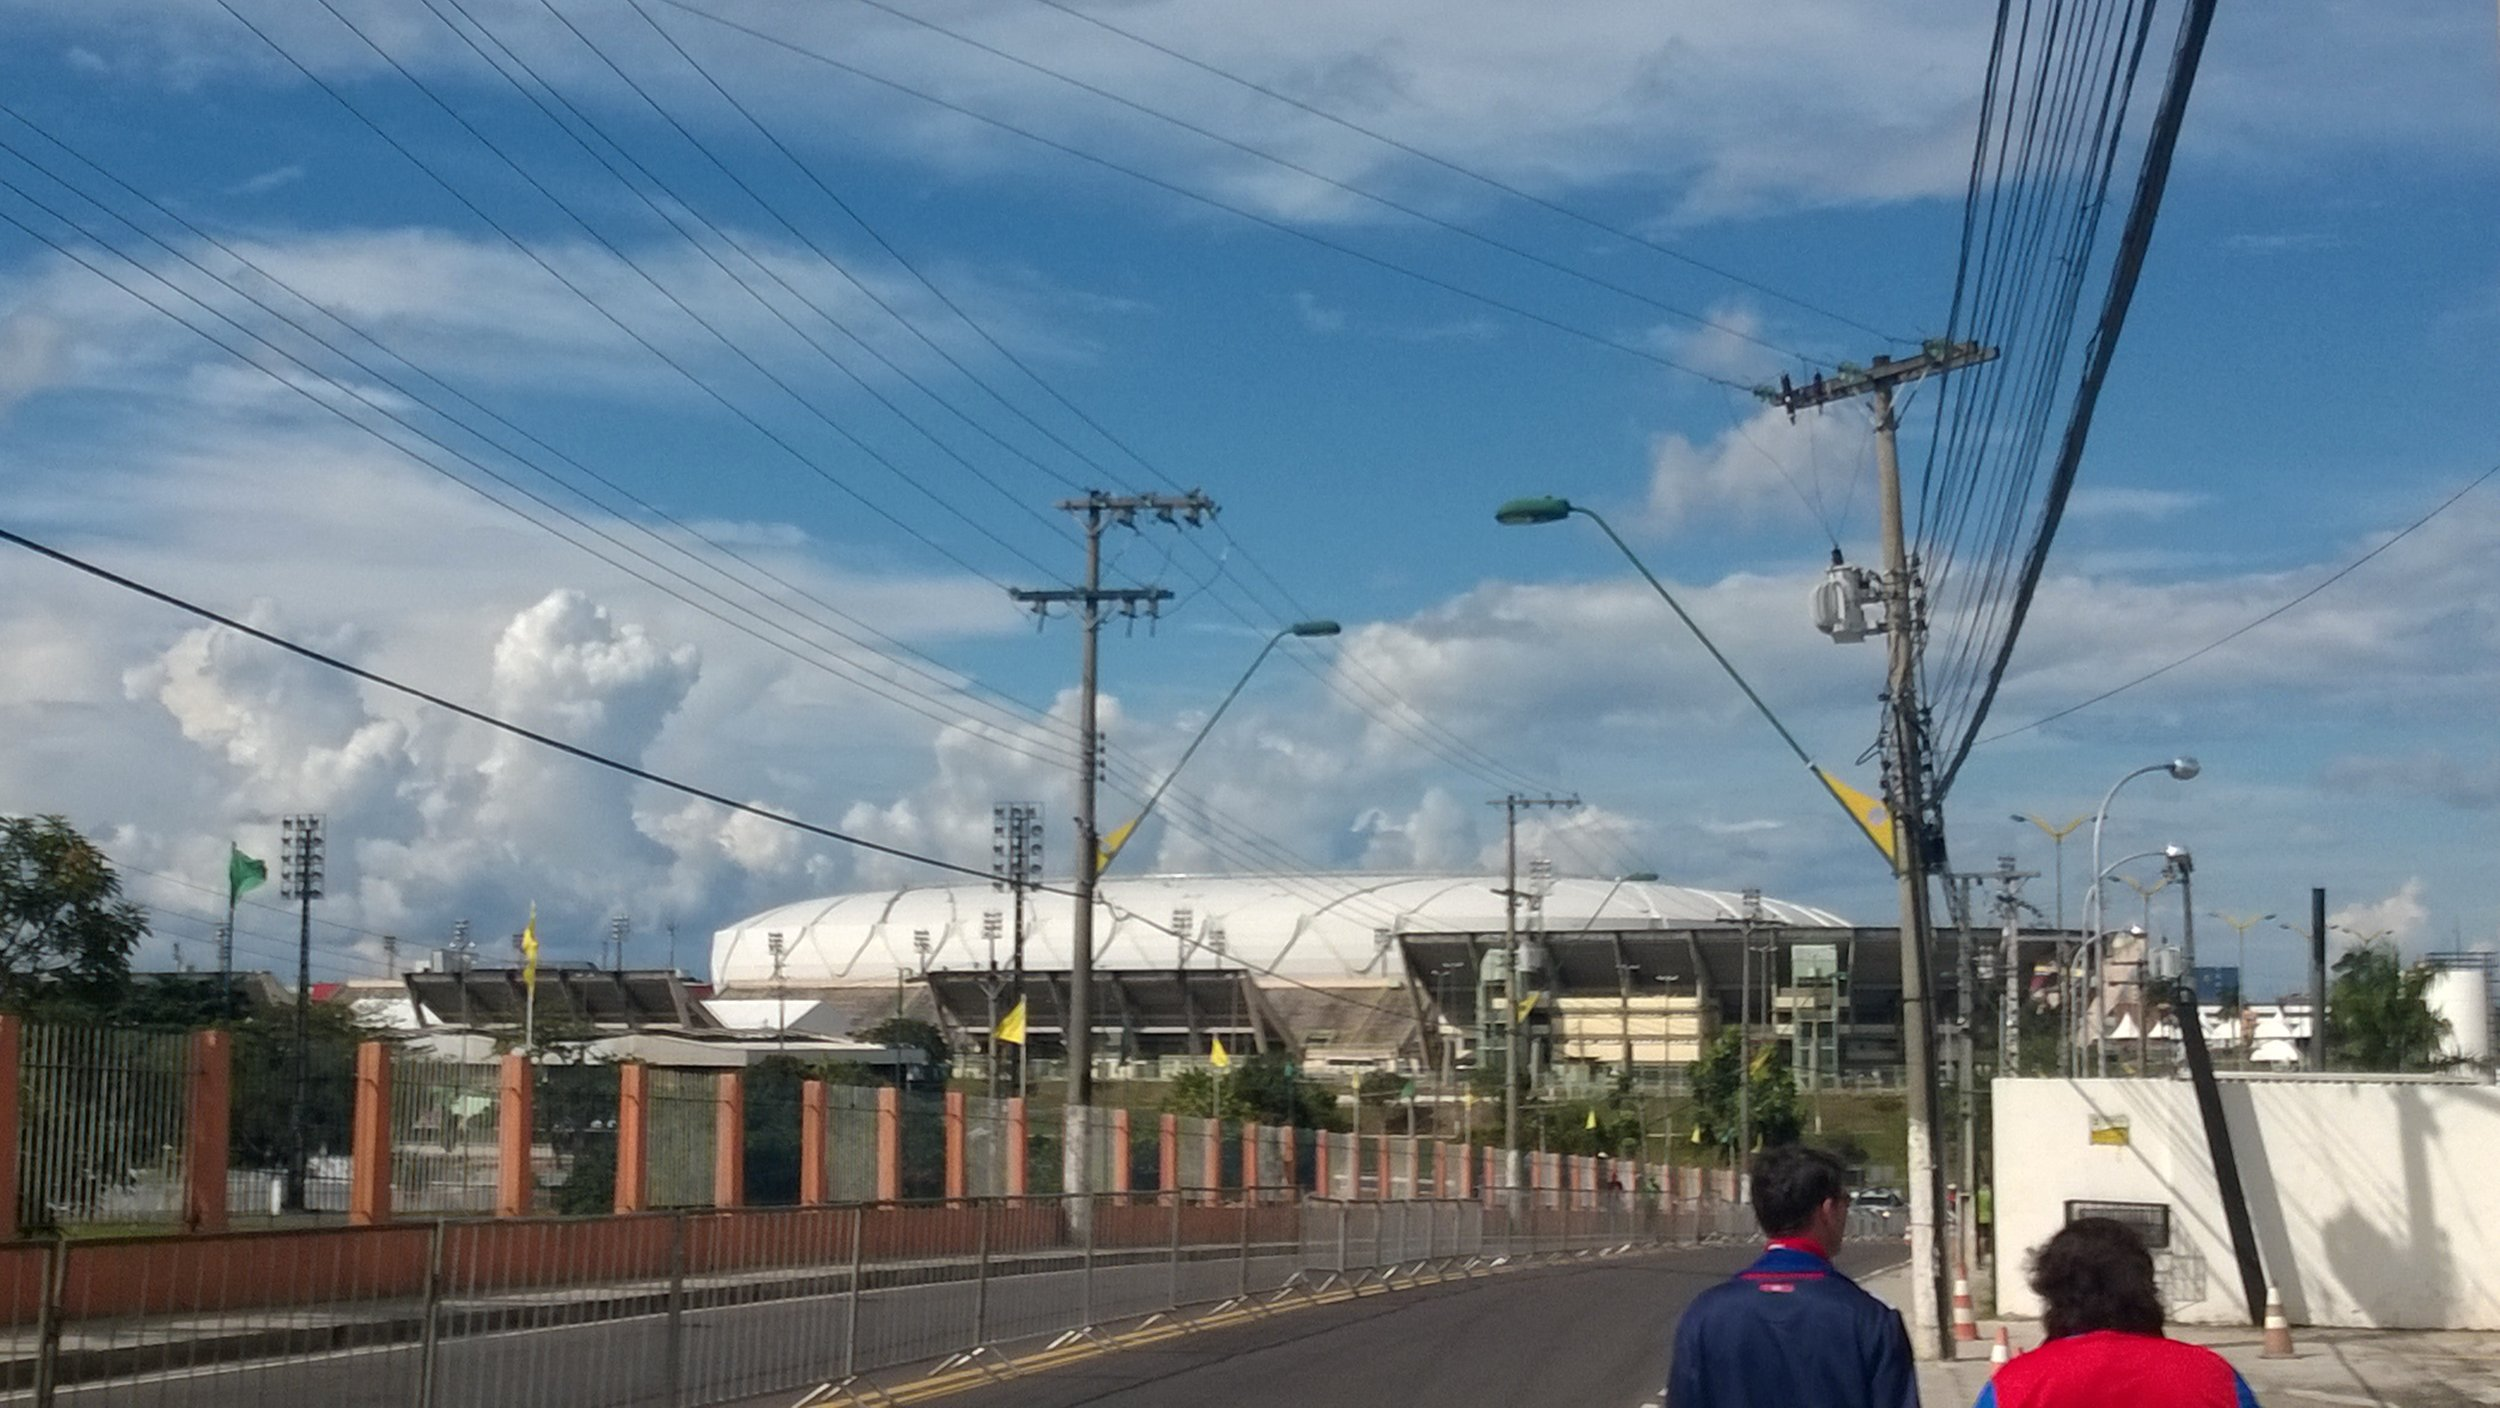 Arena Amazonia a short, hot and humid walk away